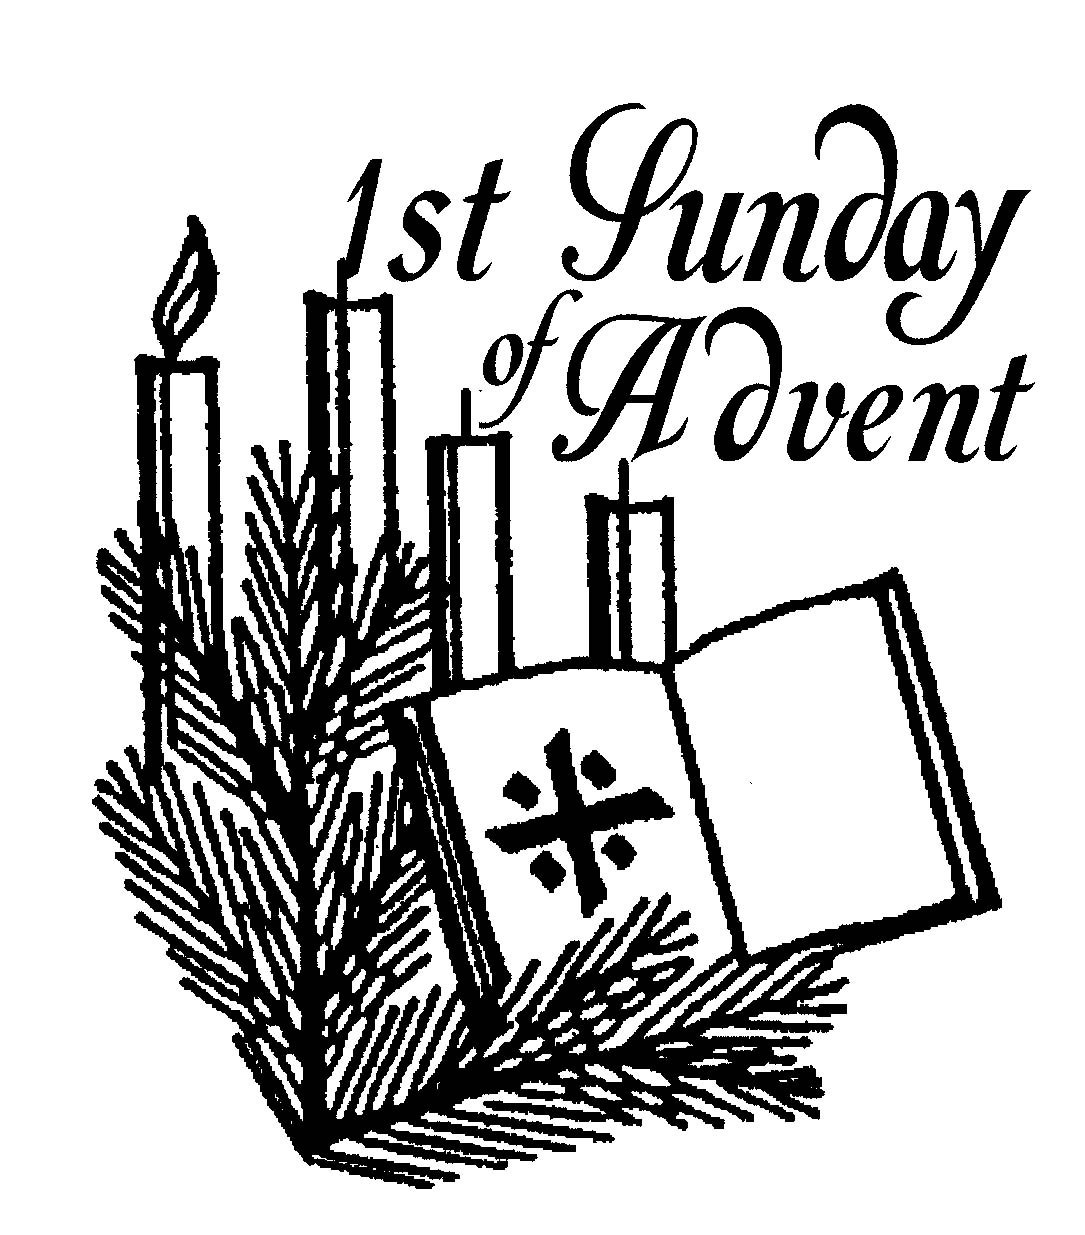 Free candles download best. Advent clipart service